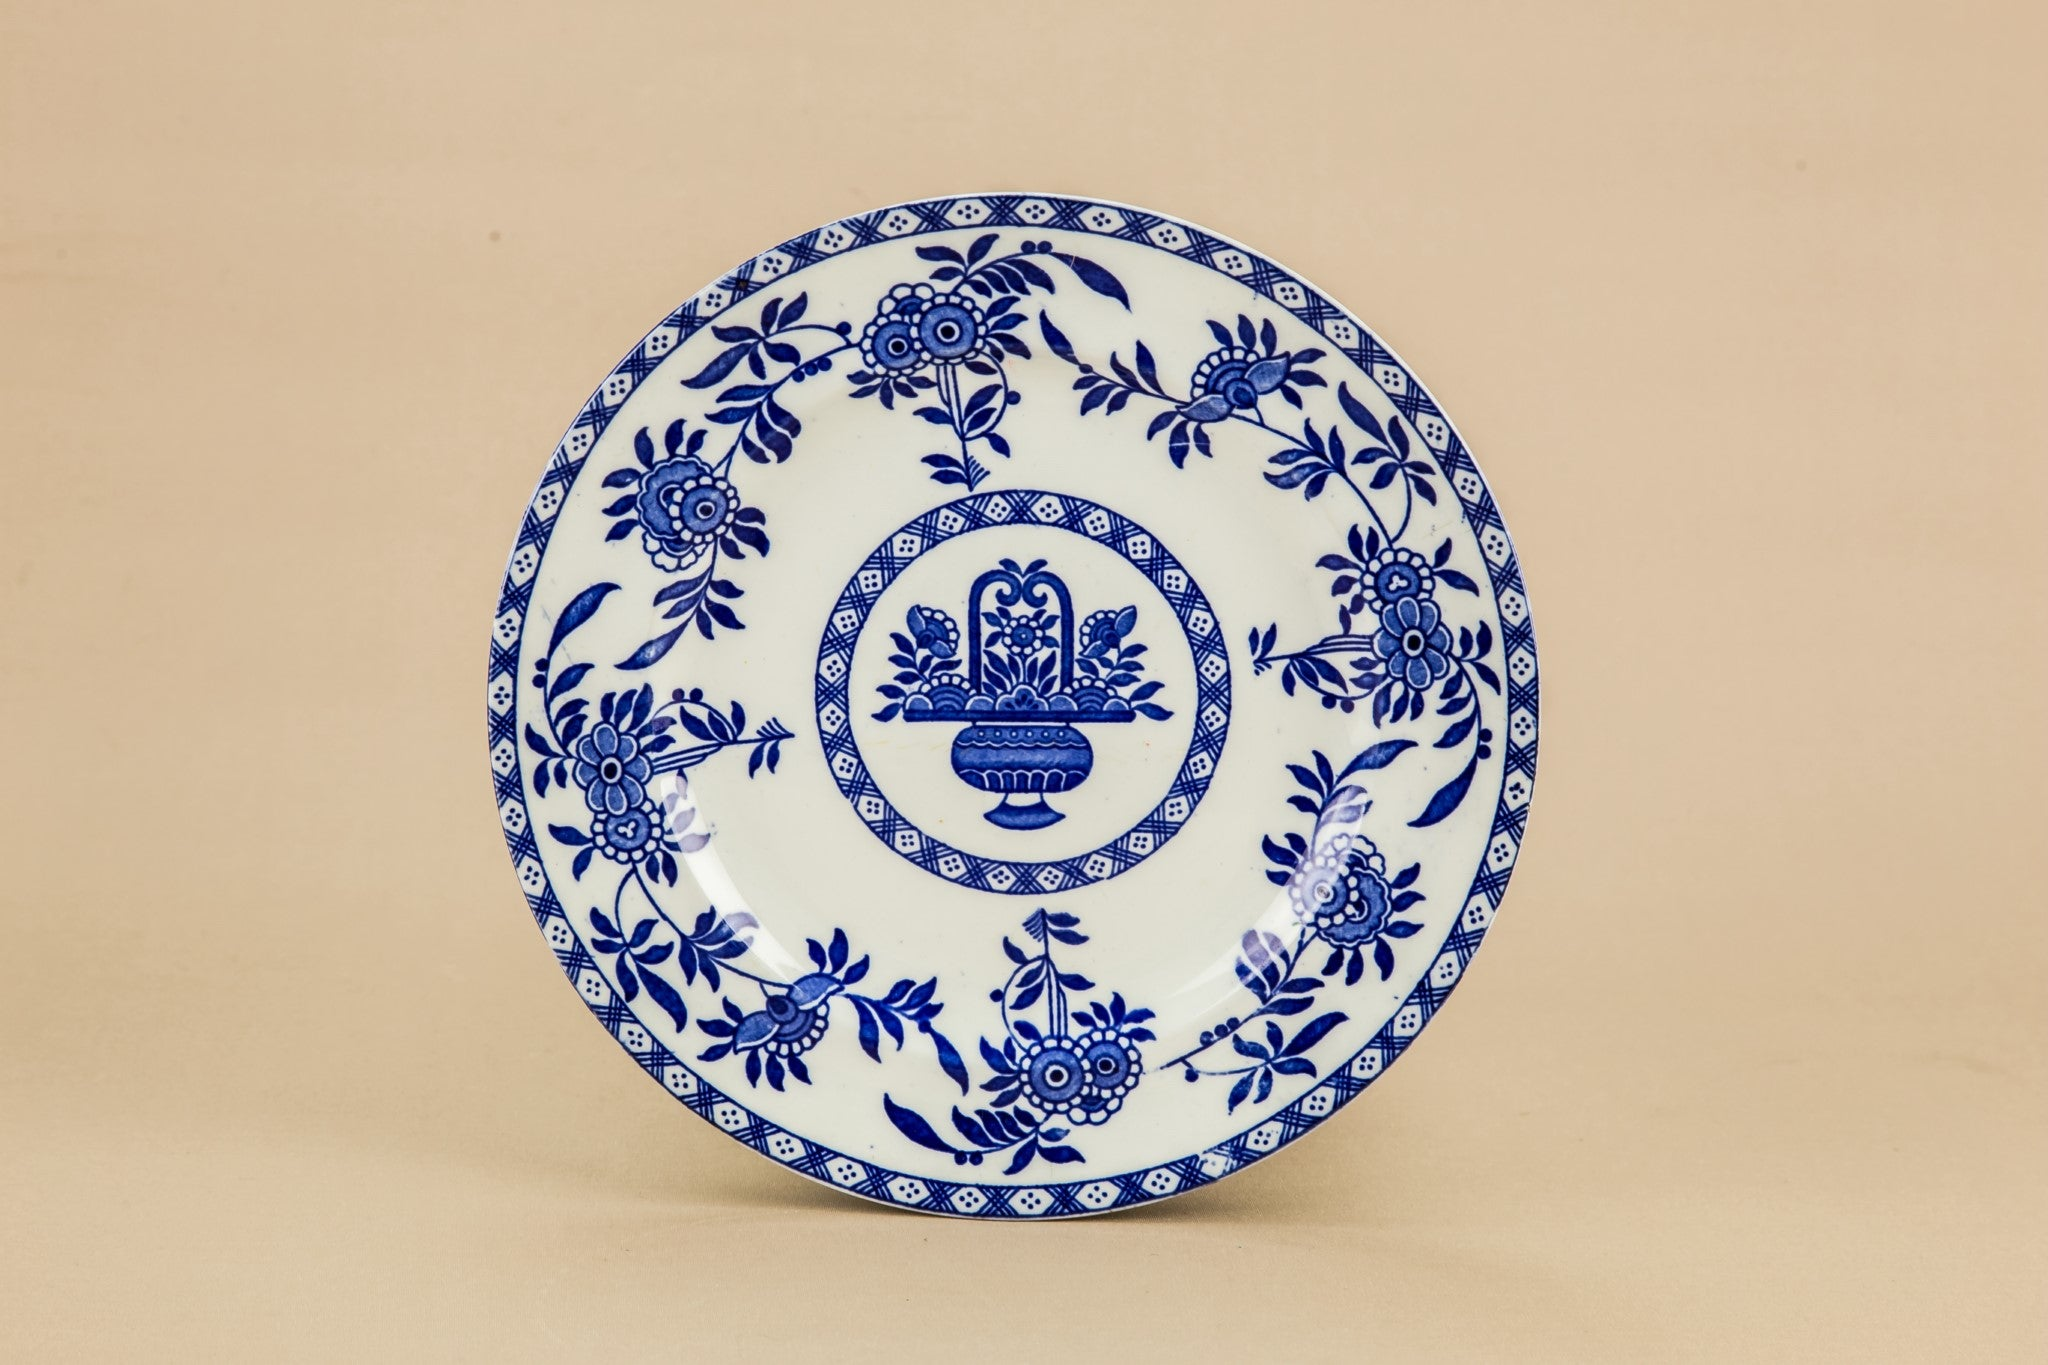 6 blue and white medium plates